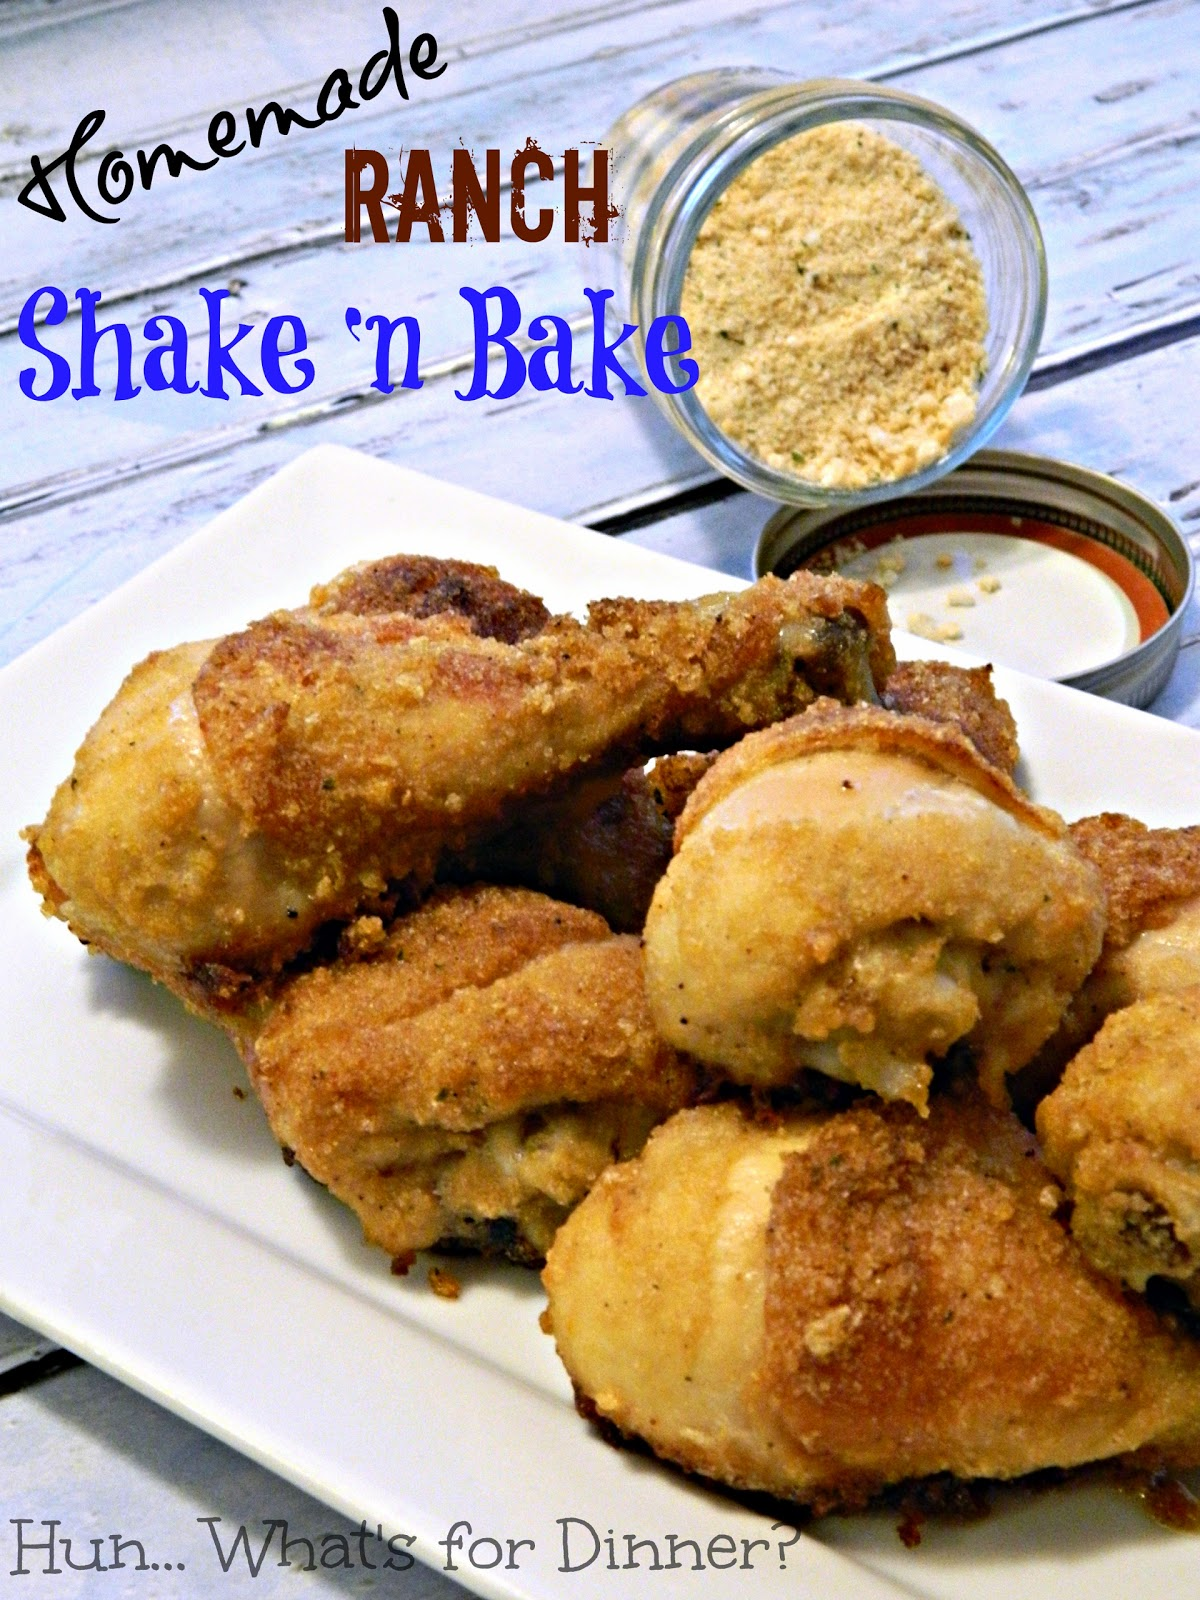 Hun... What's for Dinner? Homemade Shake 'n Bake- make an old classic at home!